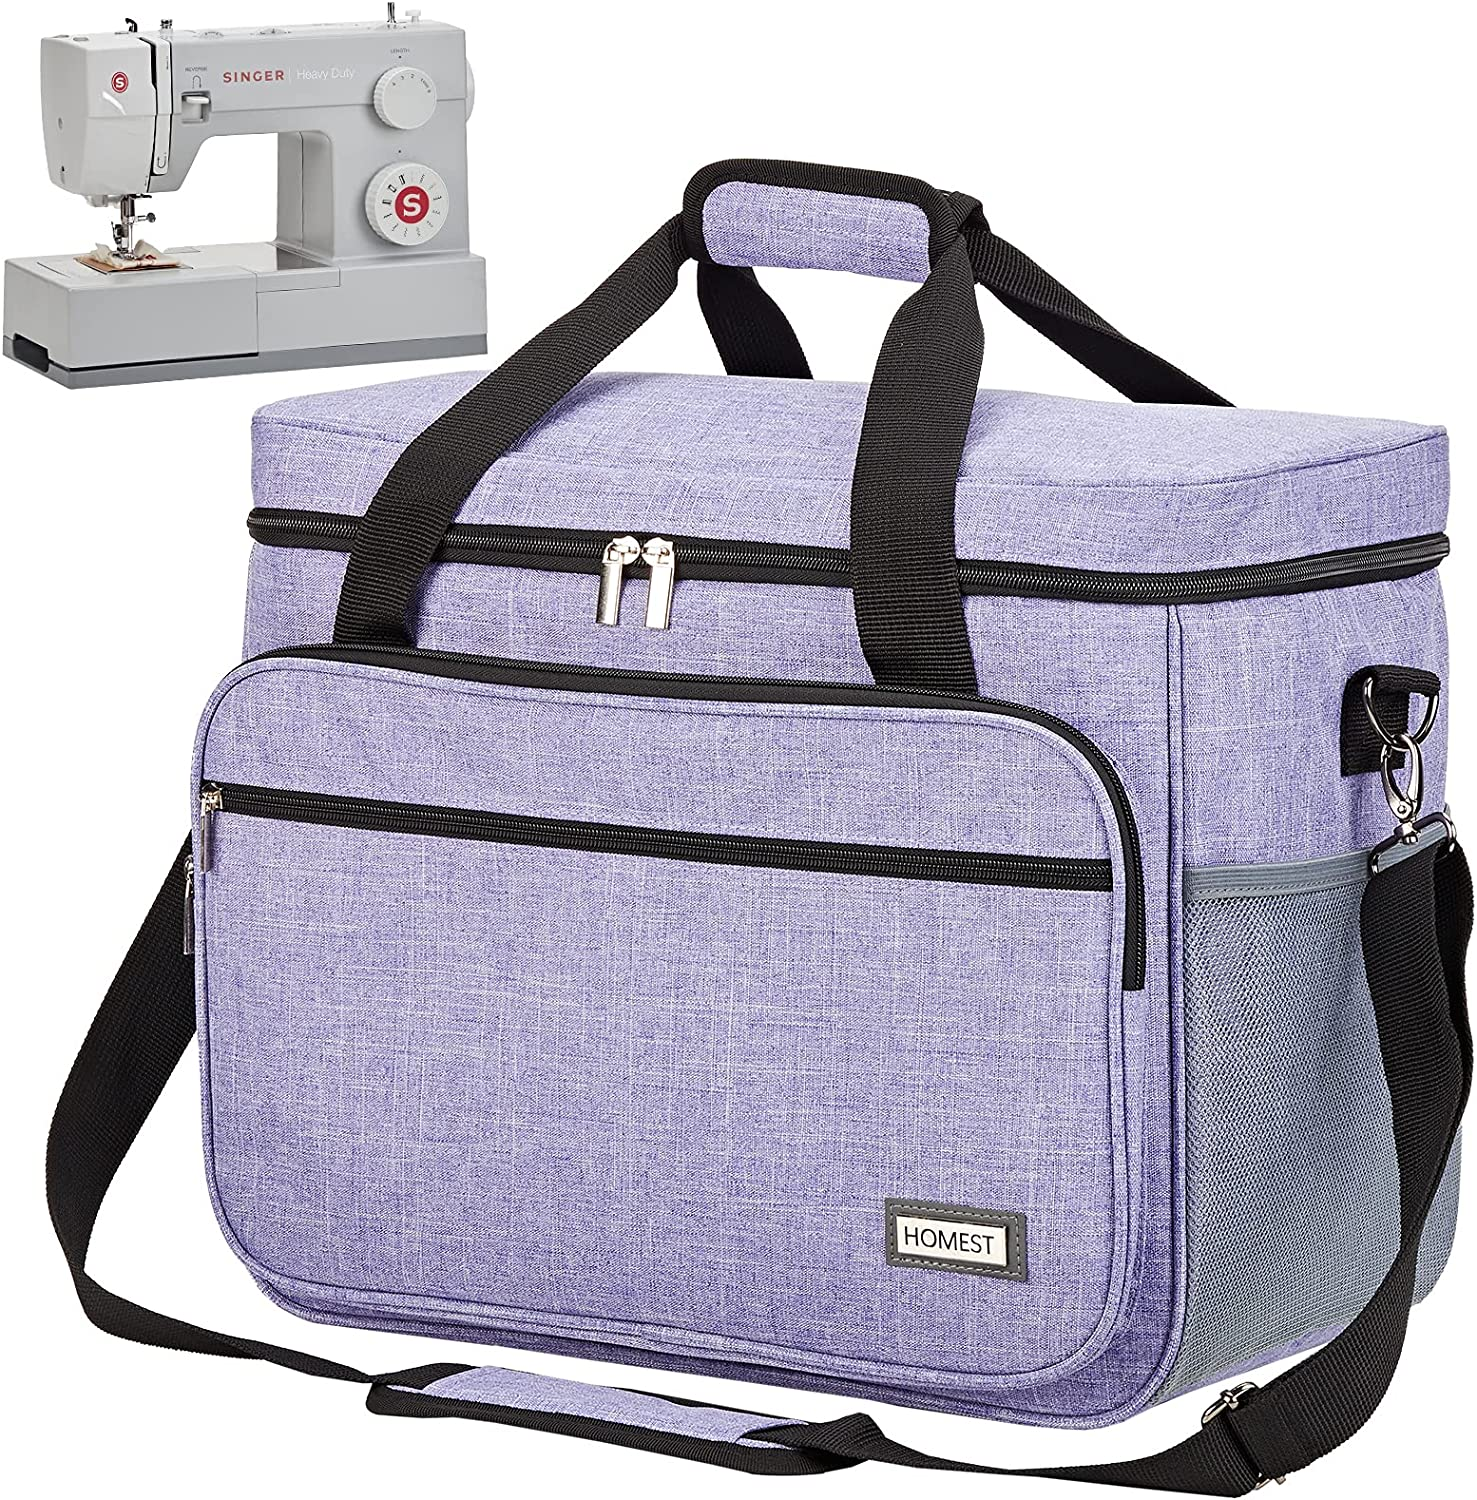 HOMEST Sewing Max 44% OFF Machine Carrying Case Unive with Pockets Multiple Max 63% OFF